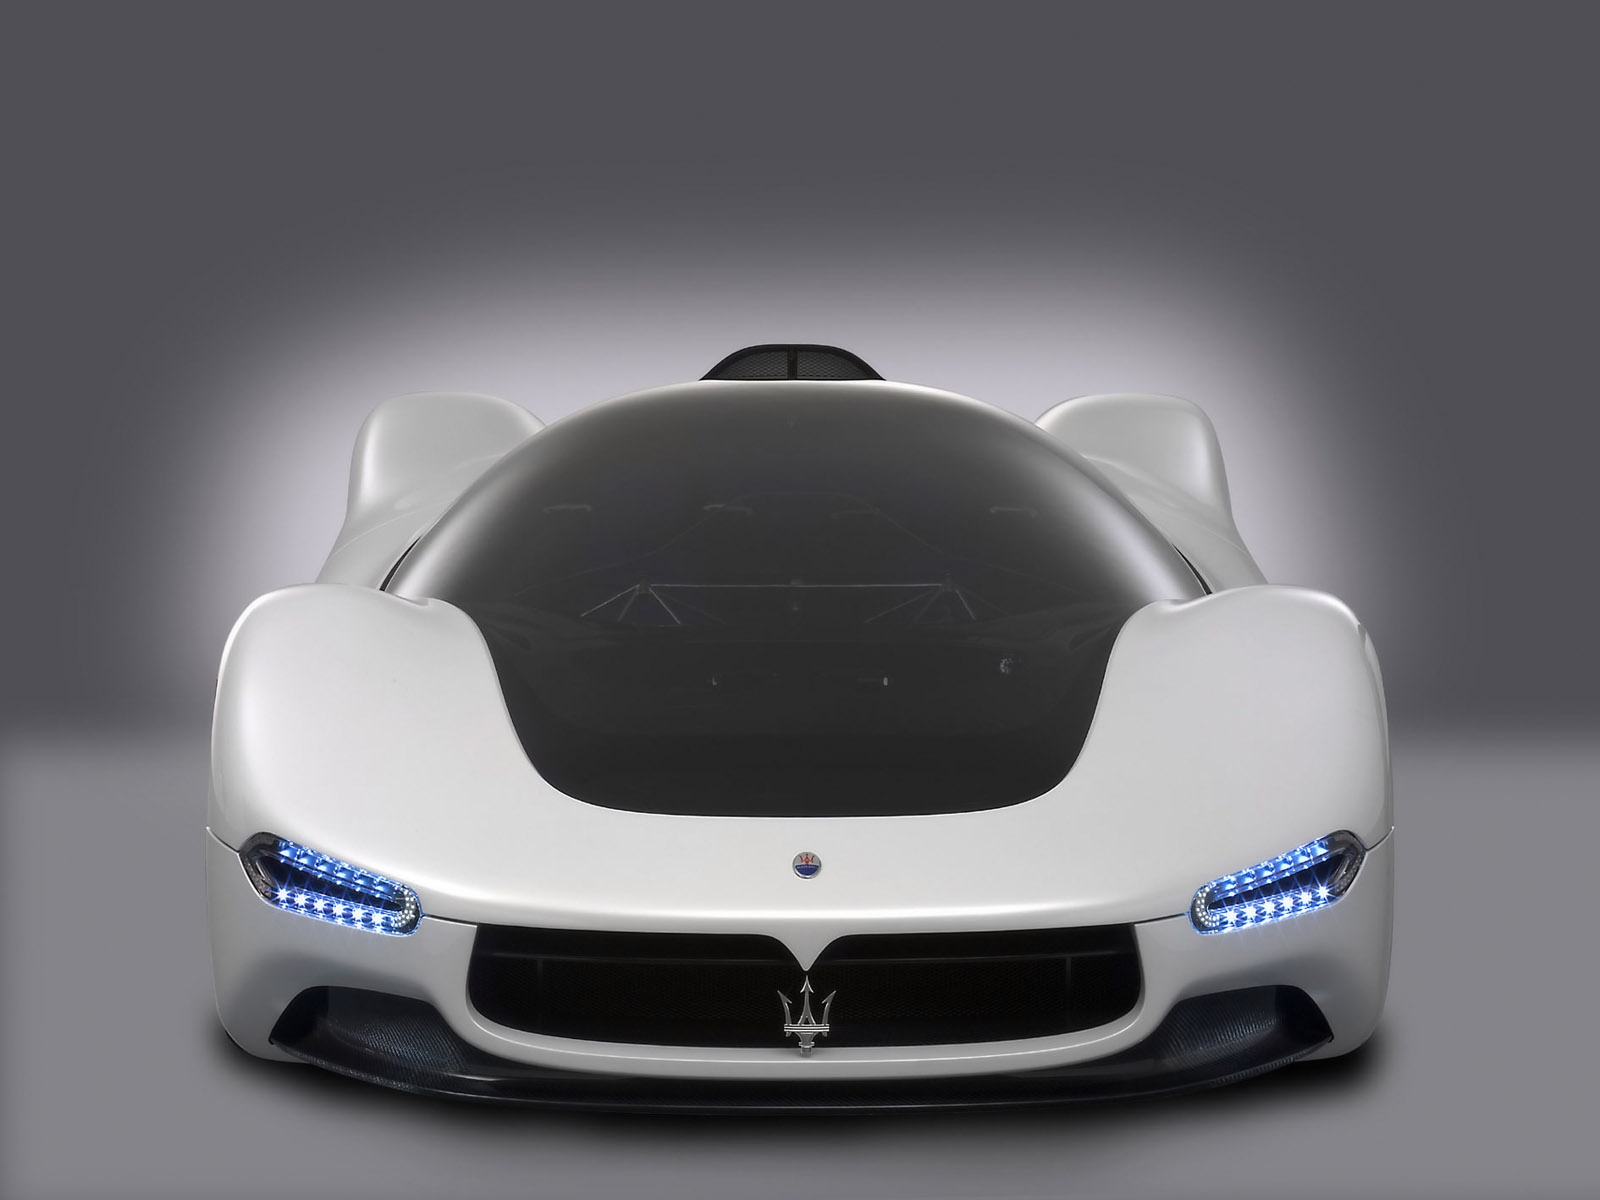 AweInspiring cars from the future